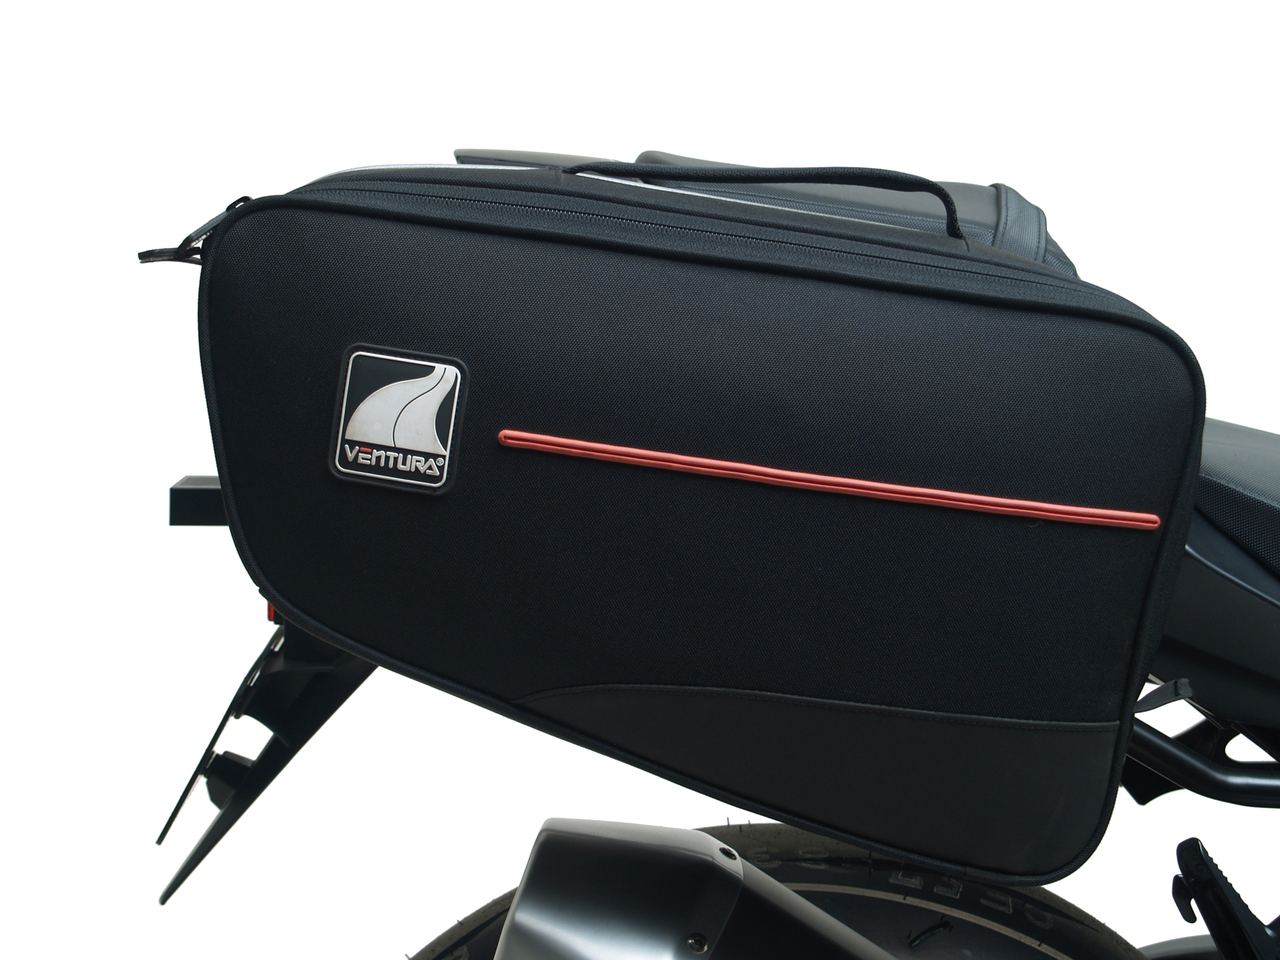 The Bonneville 24L Panniers include mounting hardware for use with L-brackets and are a great way of expanding regular Ventura luggage capacity further